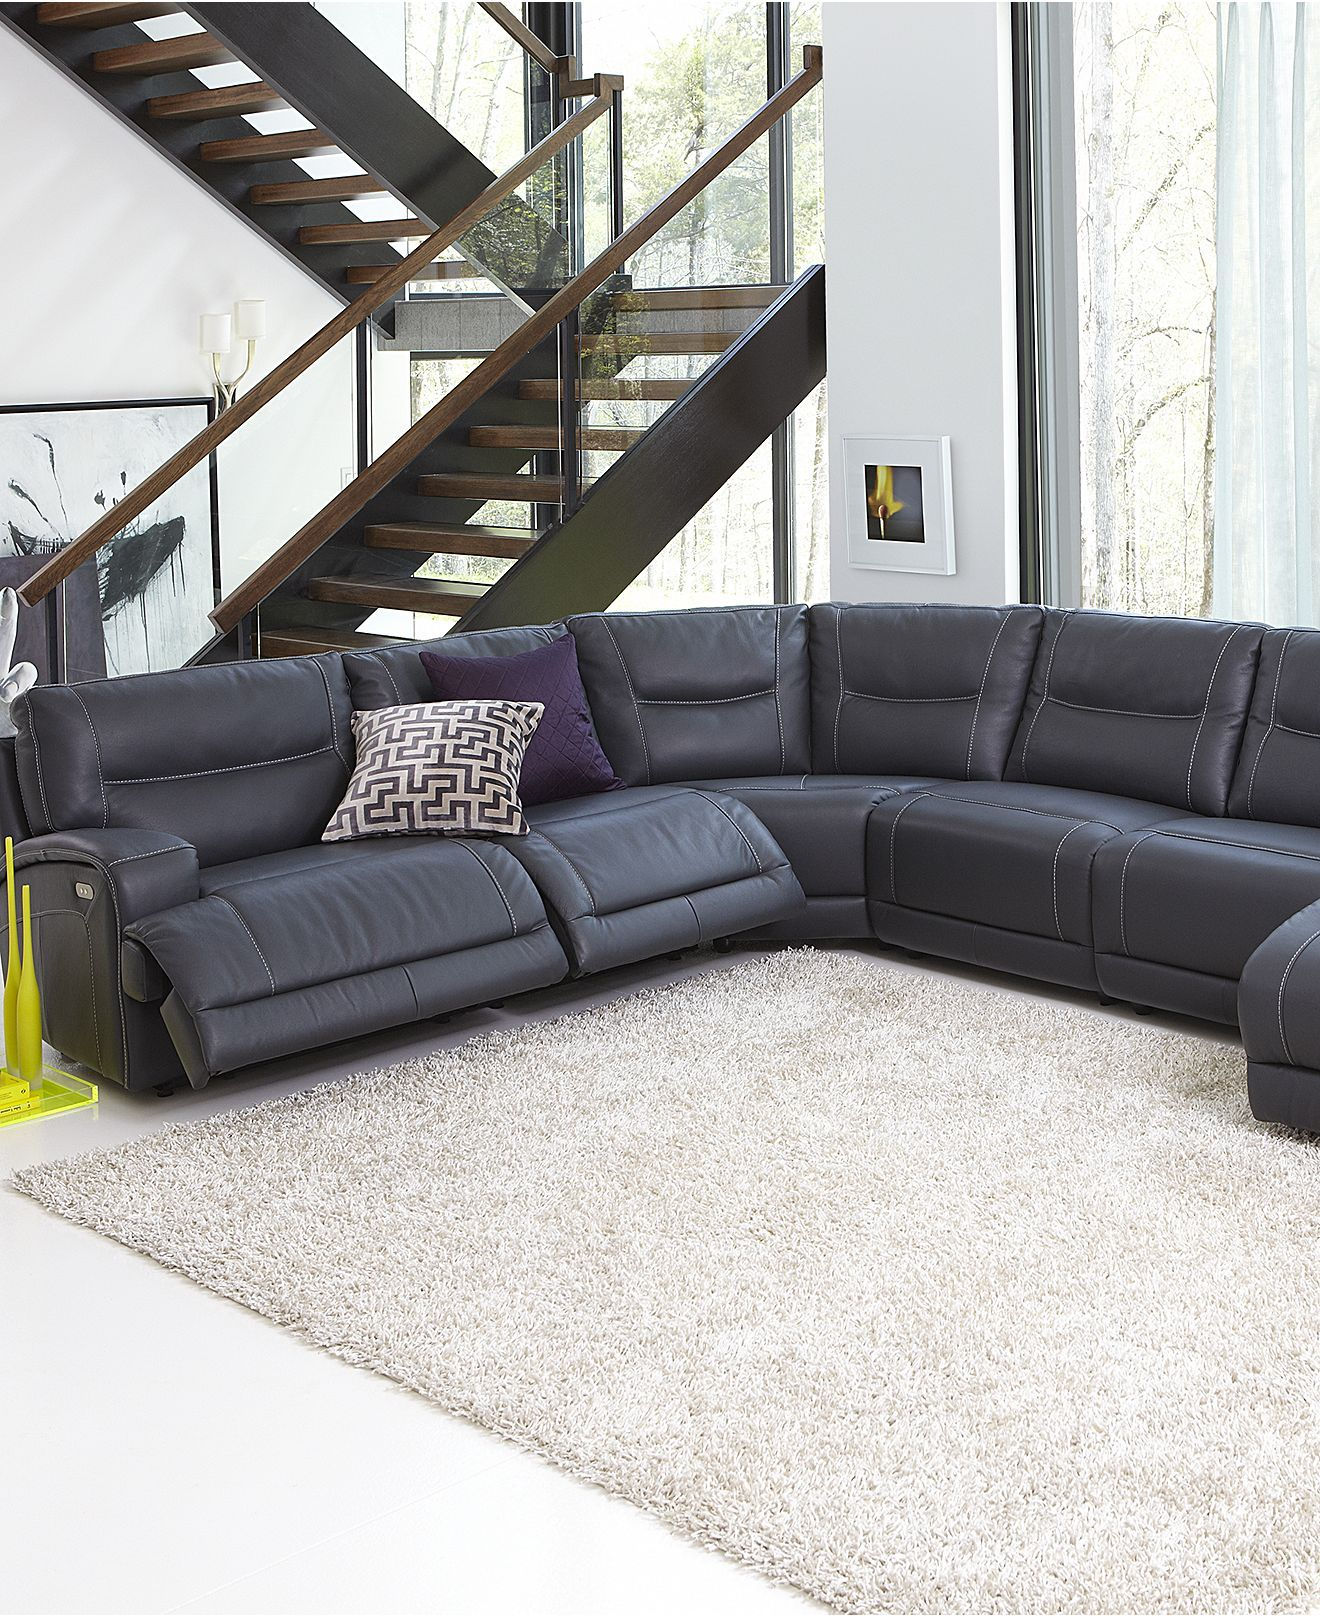 caruso leather 5 piece power motion sectional sofa by design living room